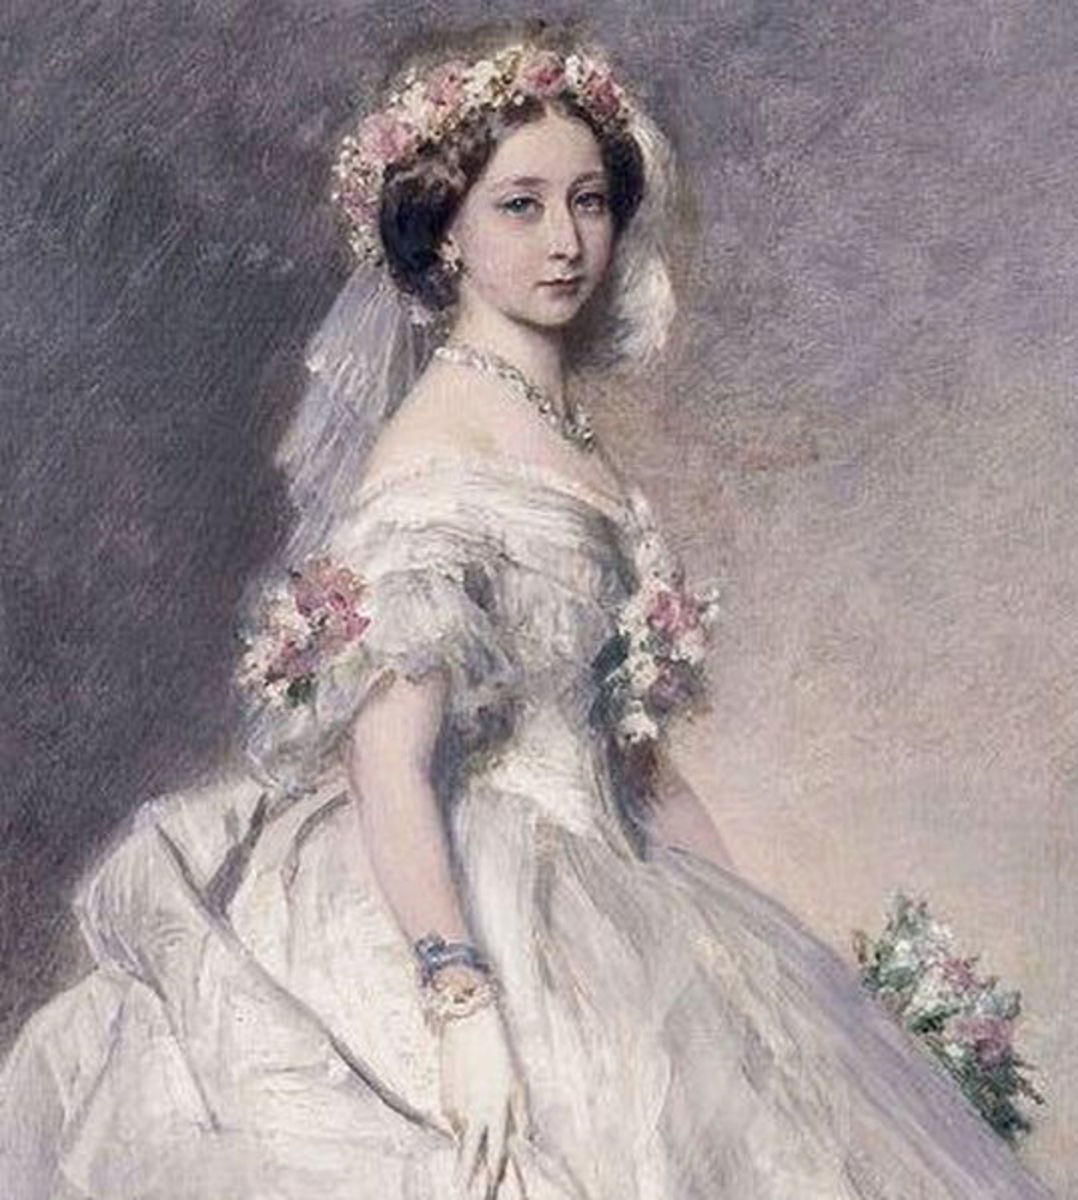 Princess Alice in her Bridal Gown by Franz Xaver Winterhalter, 1862. Courtesy of Wiki Commons